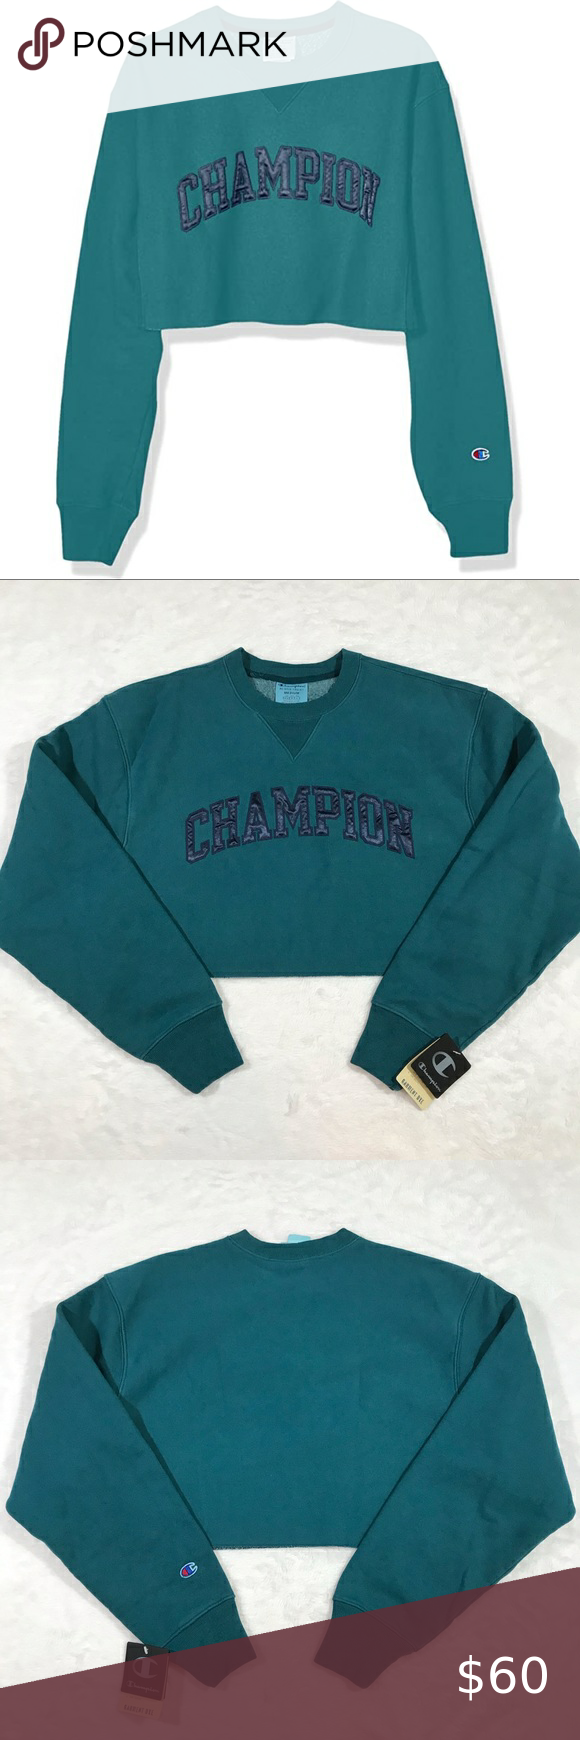 Urban Outfitters Champion Uo Reverse Weave Logo Pullover Sweatshirt Turquoise Champion Clothing Sweatshirts Pullover [ 1463 x 975 Pixel ]